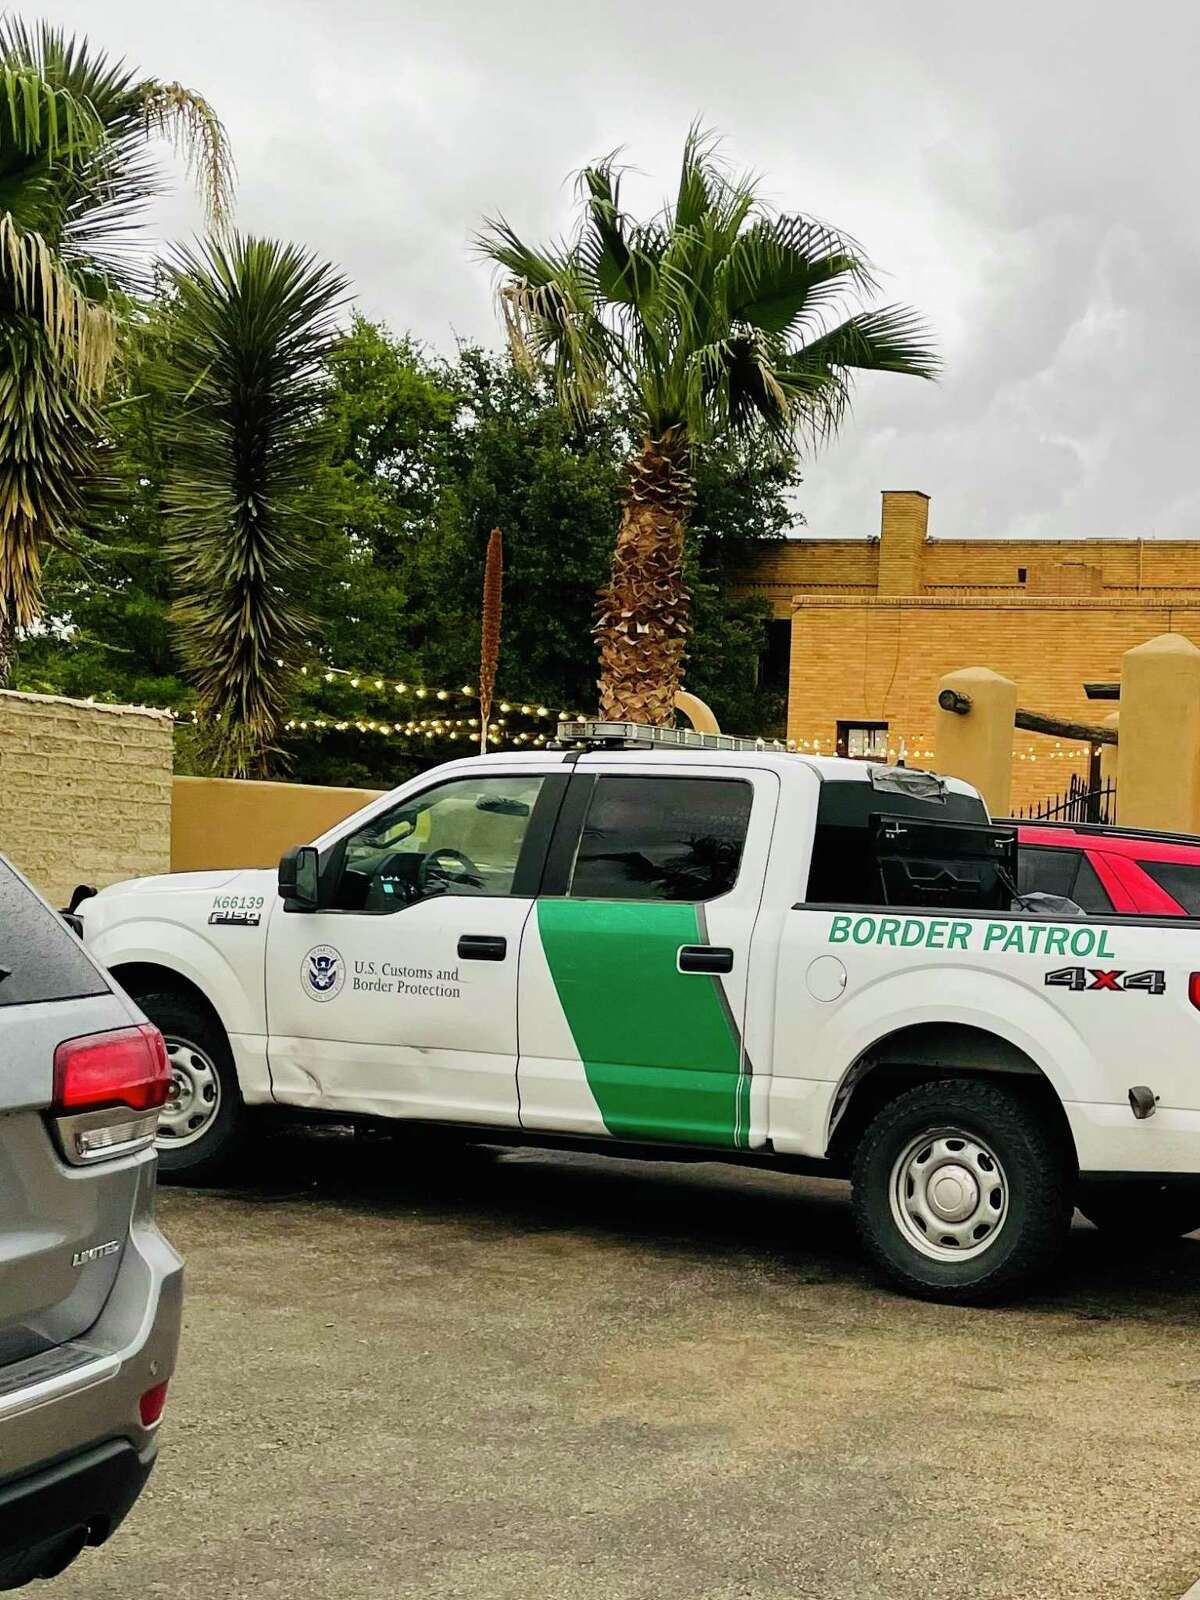 The Border Patrol is ubiquitous in far West Texas, but the undocumented still manage to make it through.